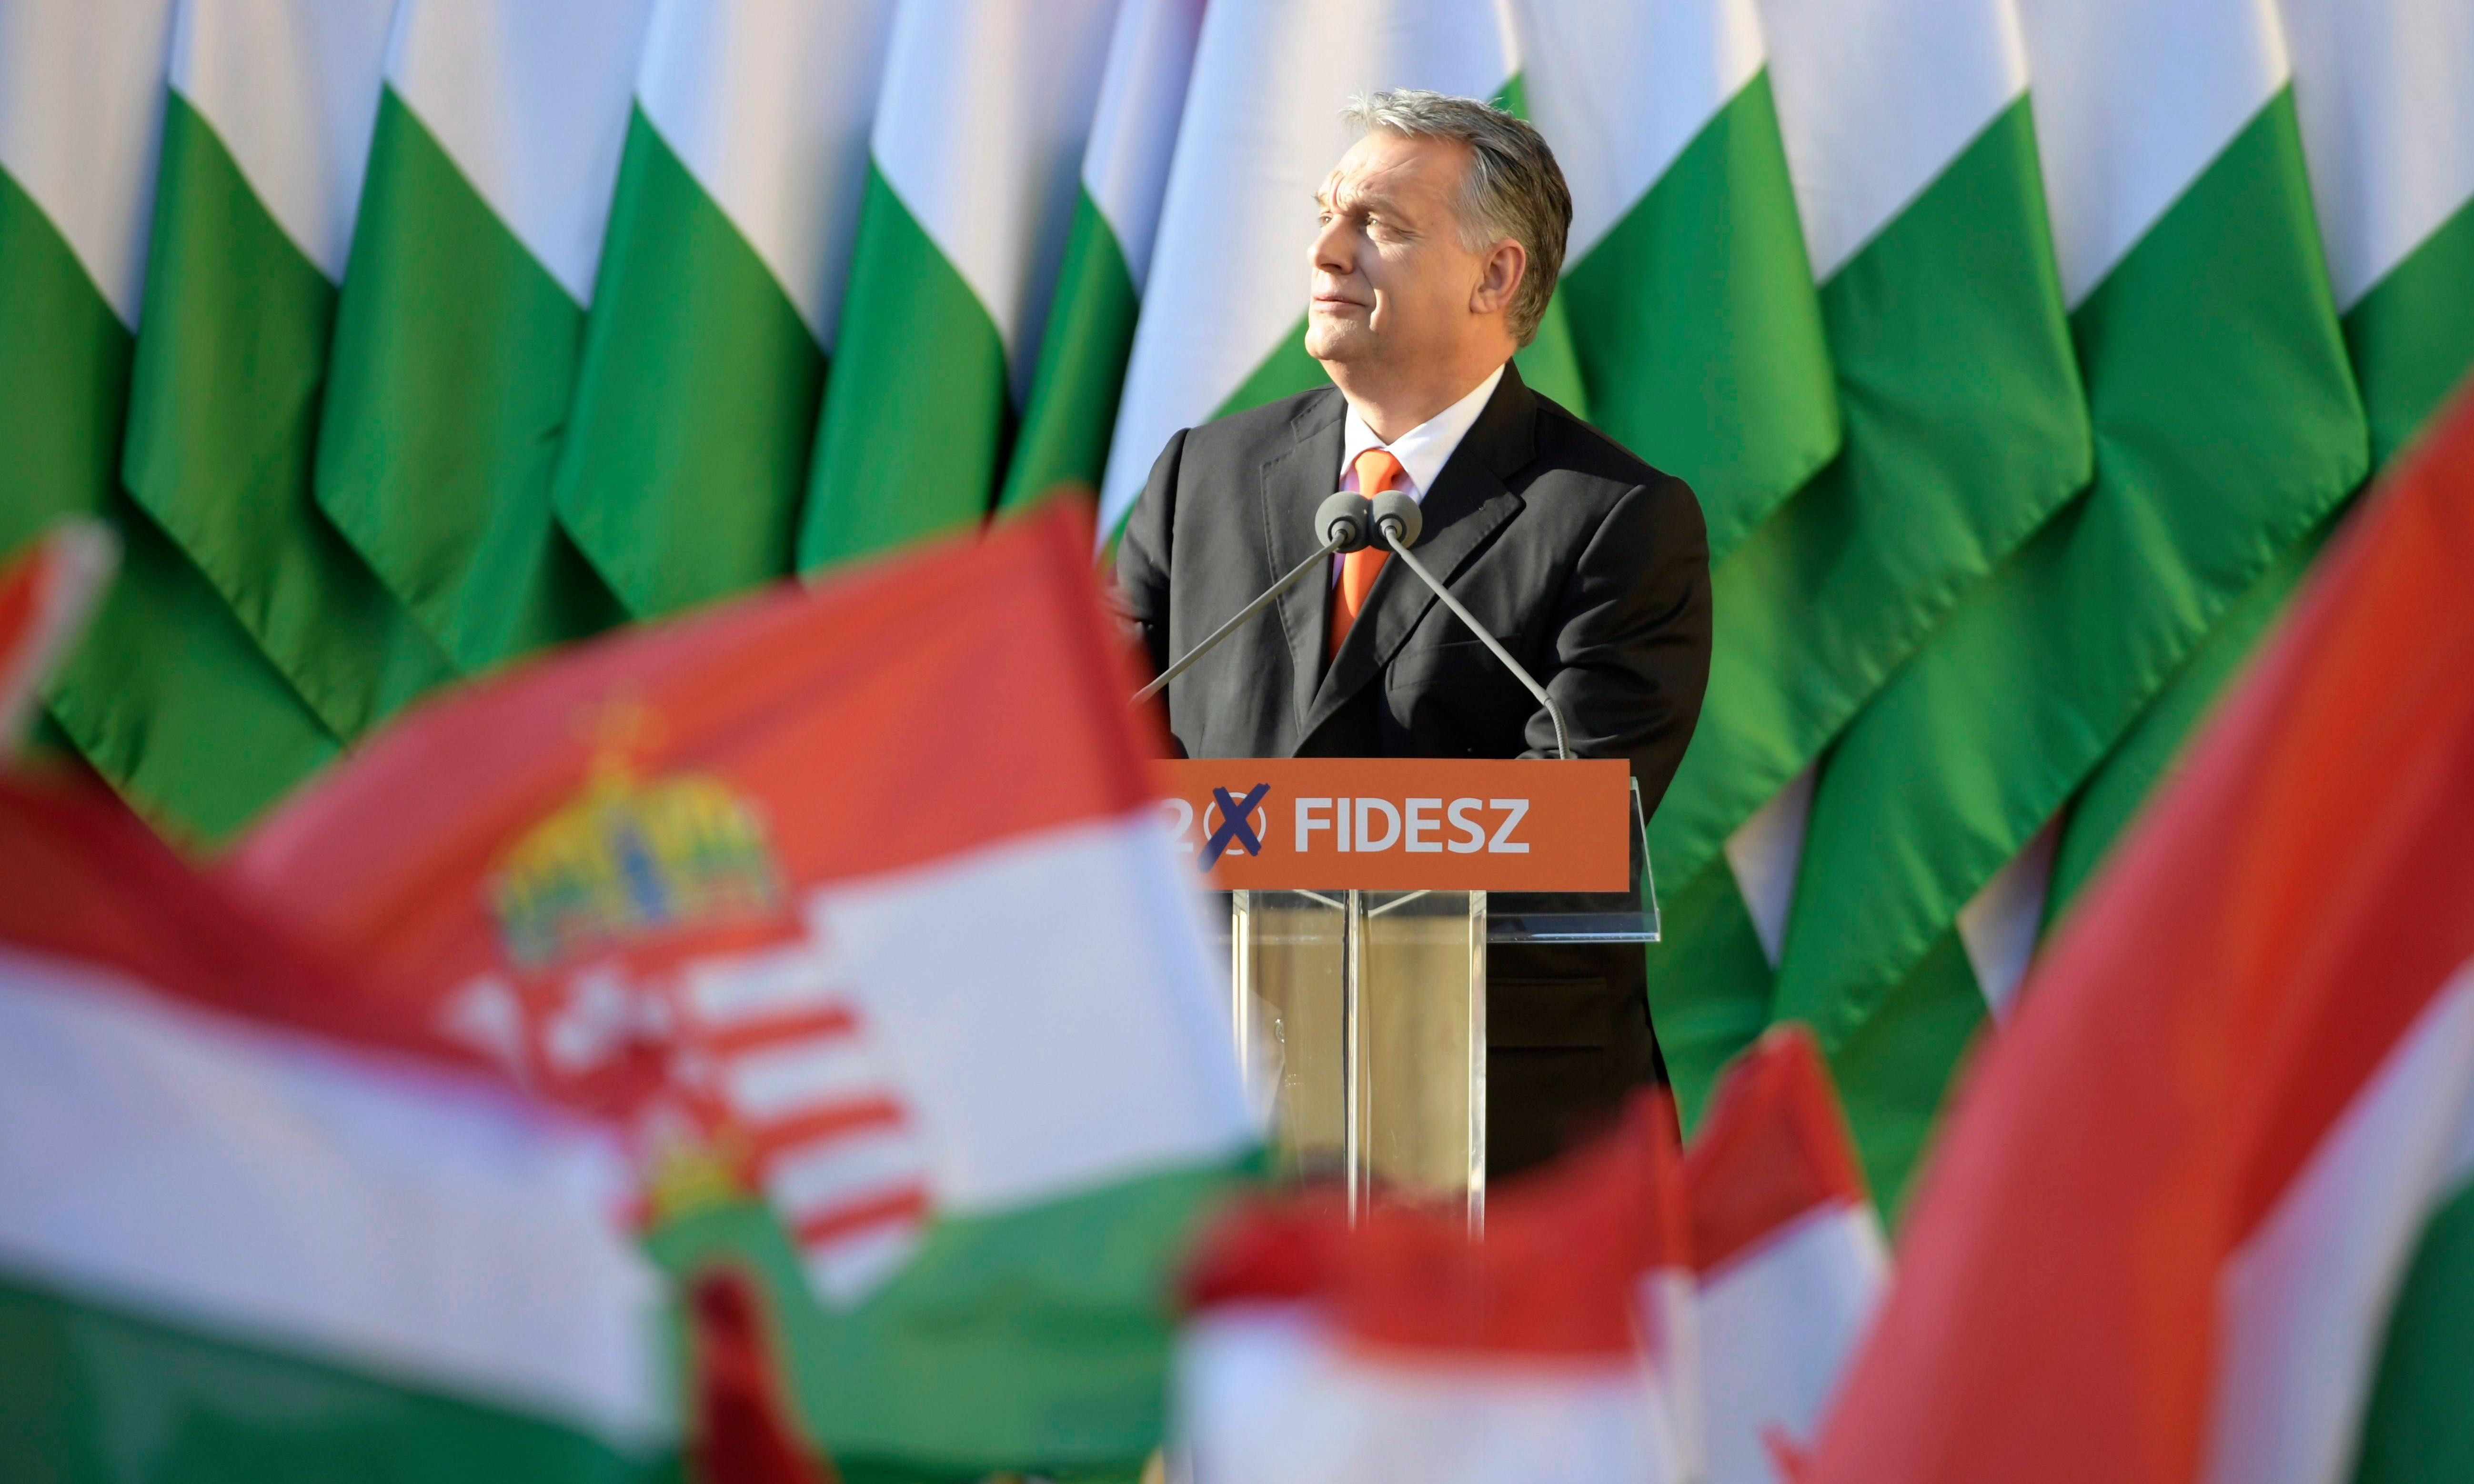 Viktor Orbán's party suspended from centre-right EPP bloc